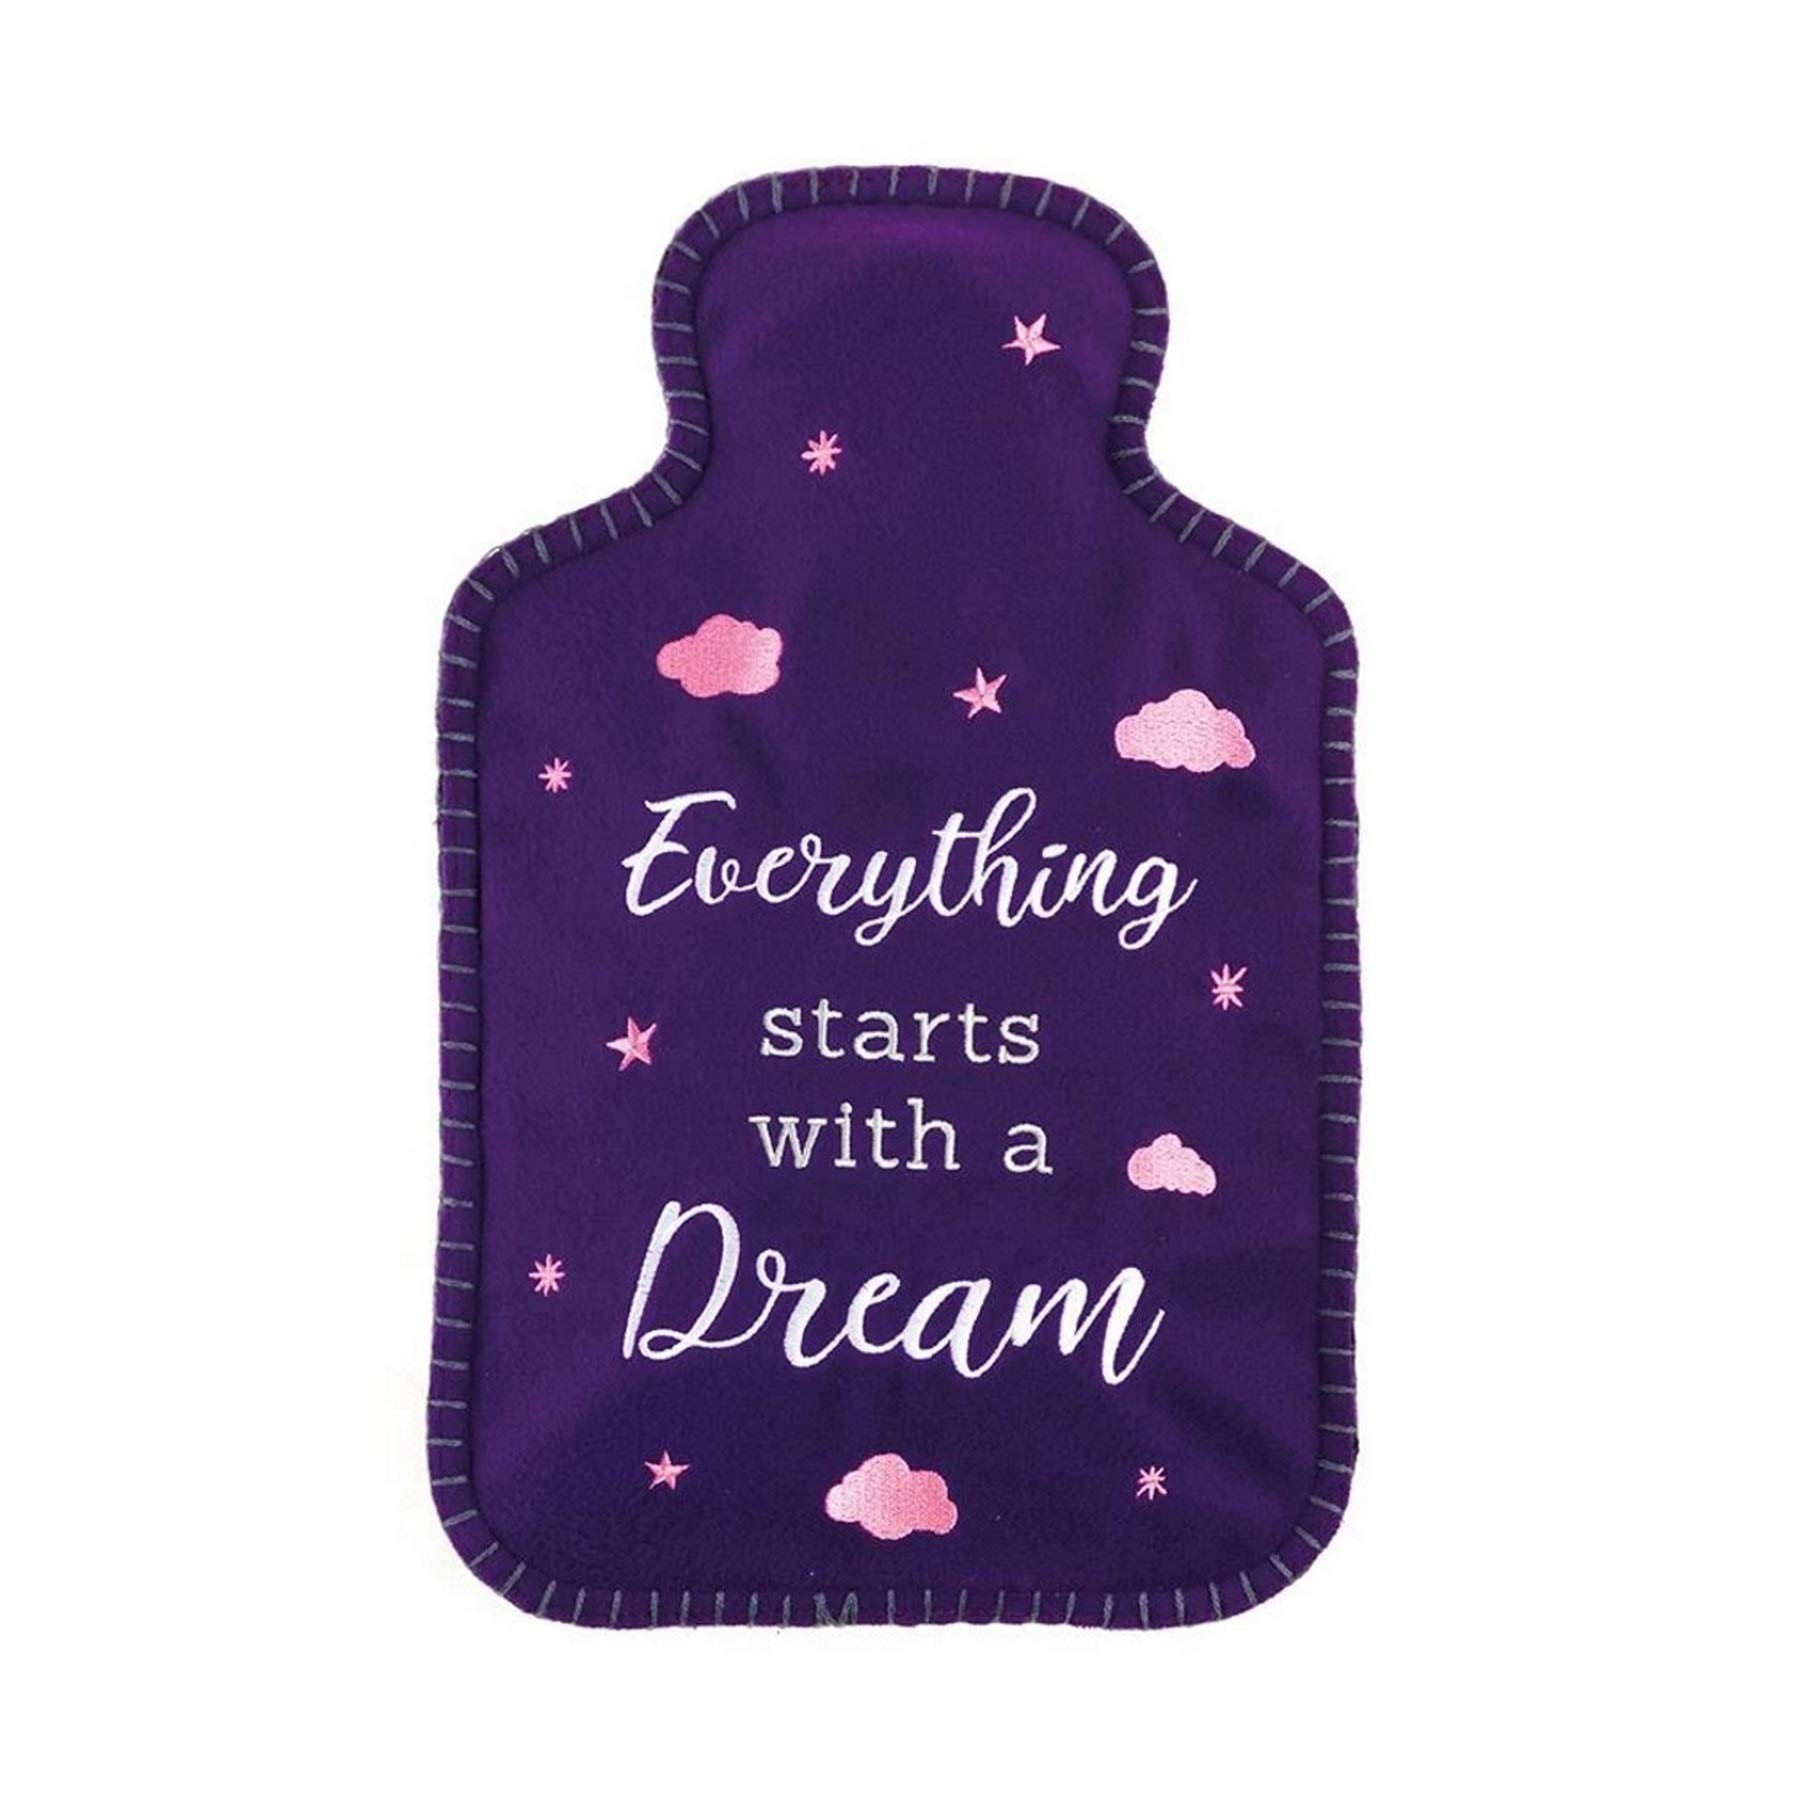 Aroma Home Relaxing Sleep Hot Water Bottle - Everything Starts with A Dream by Aroma Home